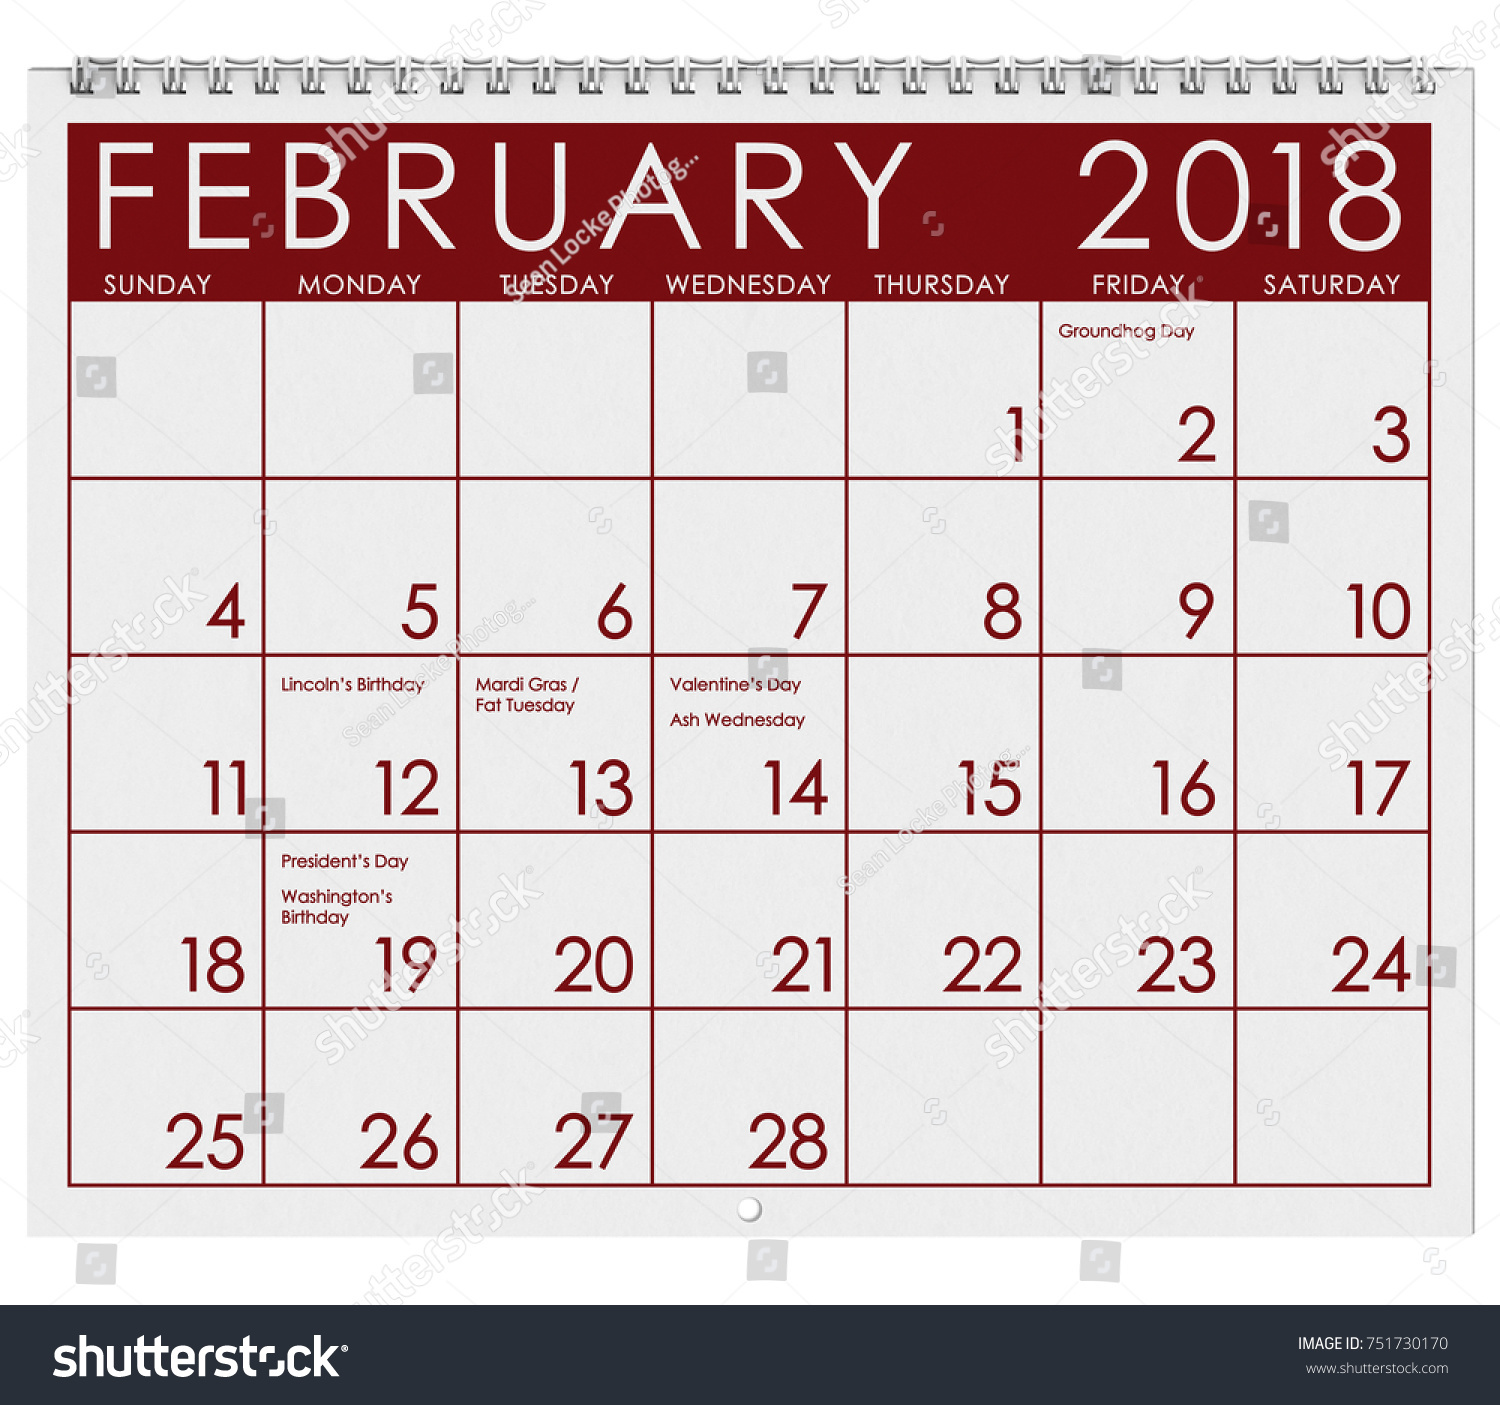 2018 Calendar Month February Valentines Day Stock Photo (Safe to